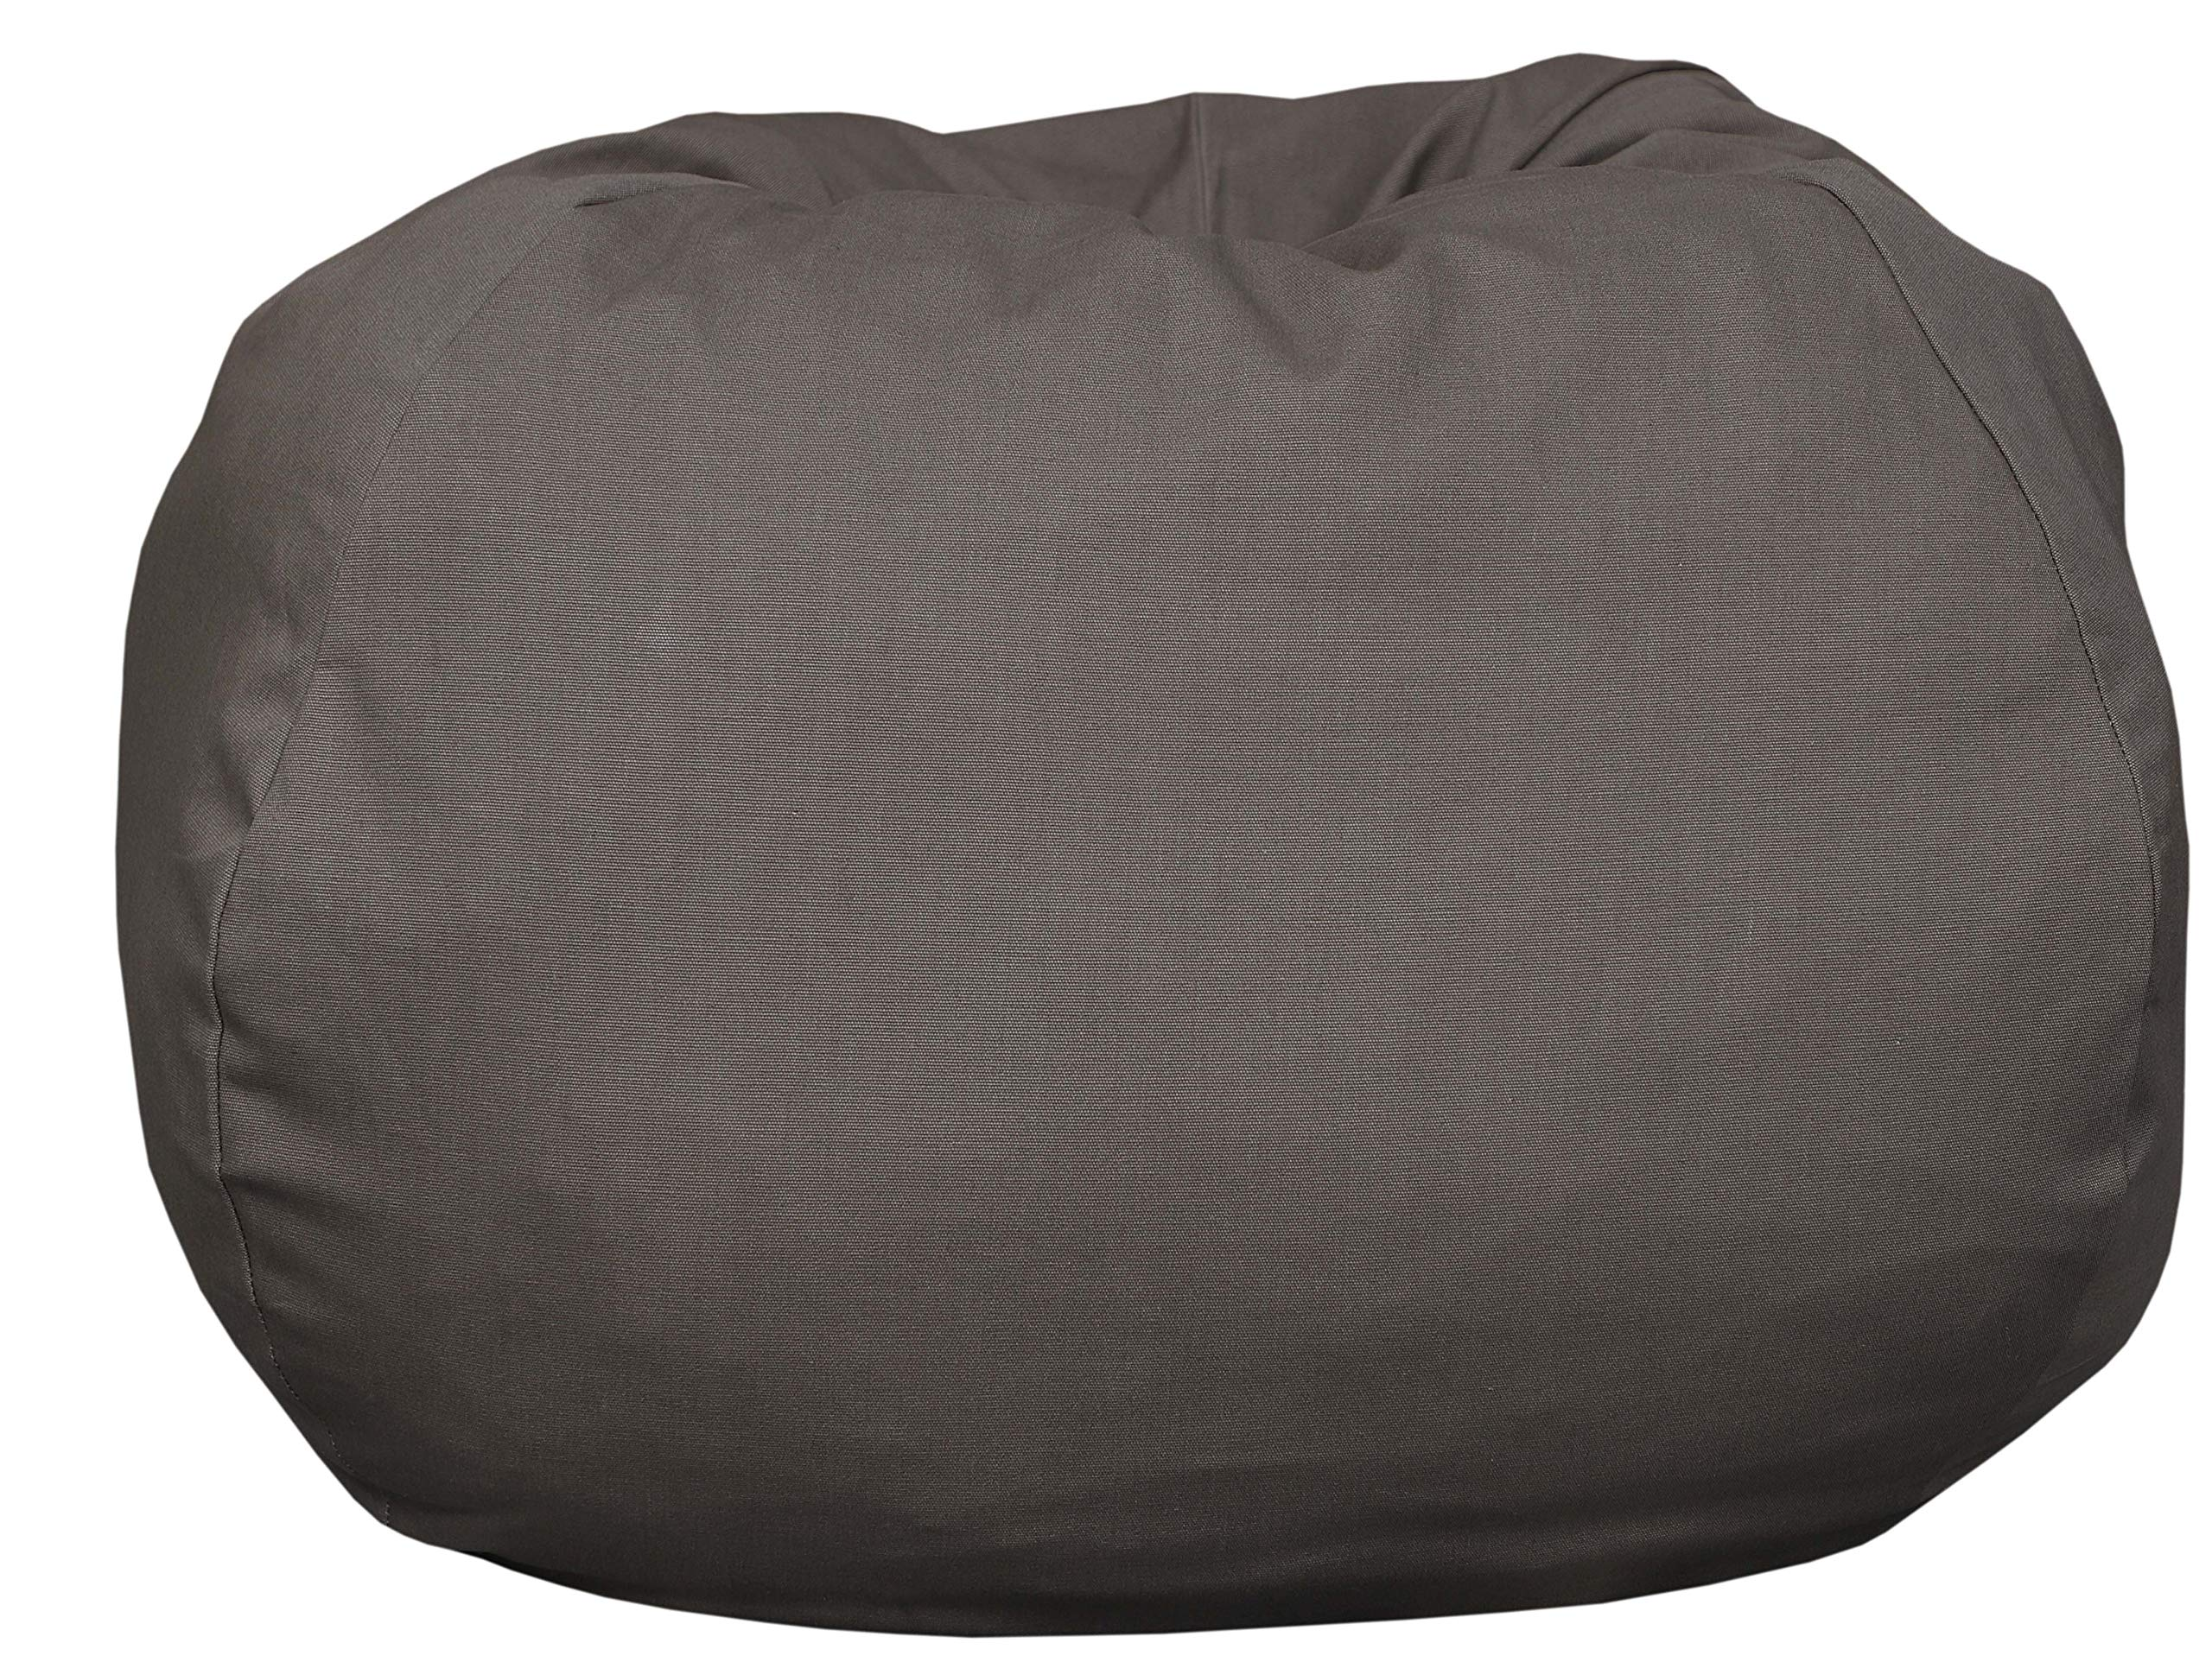 Extra Large Bean Bag Covers Only Stuffed Animal Storage Stuffed 40'' Brown Anti Tear Premium Cotton Canvas Chair for Toys Perfect Storage Solution for Pillows/Toys/Blankets/Stuffed Toys